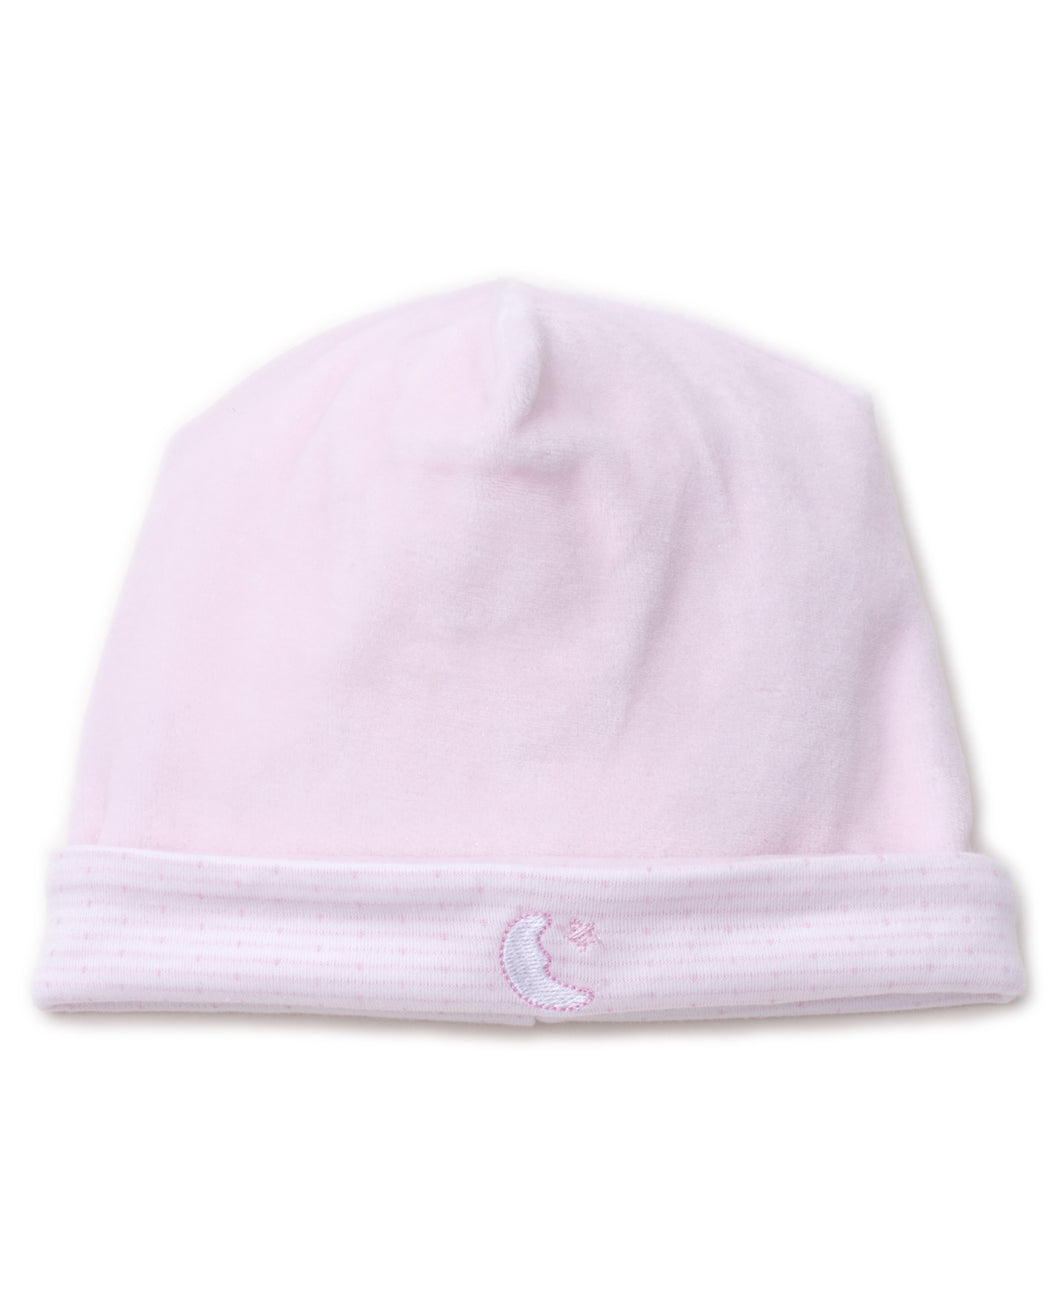 Man in the Moon Velour Hat - Pink